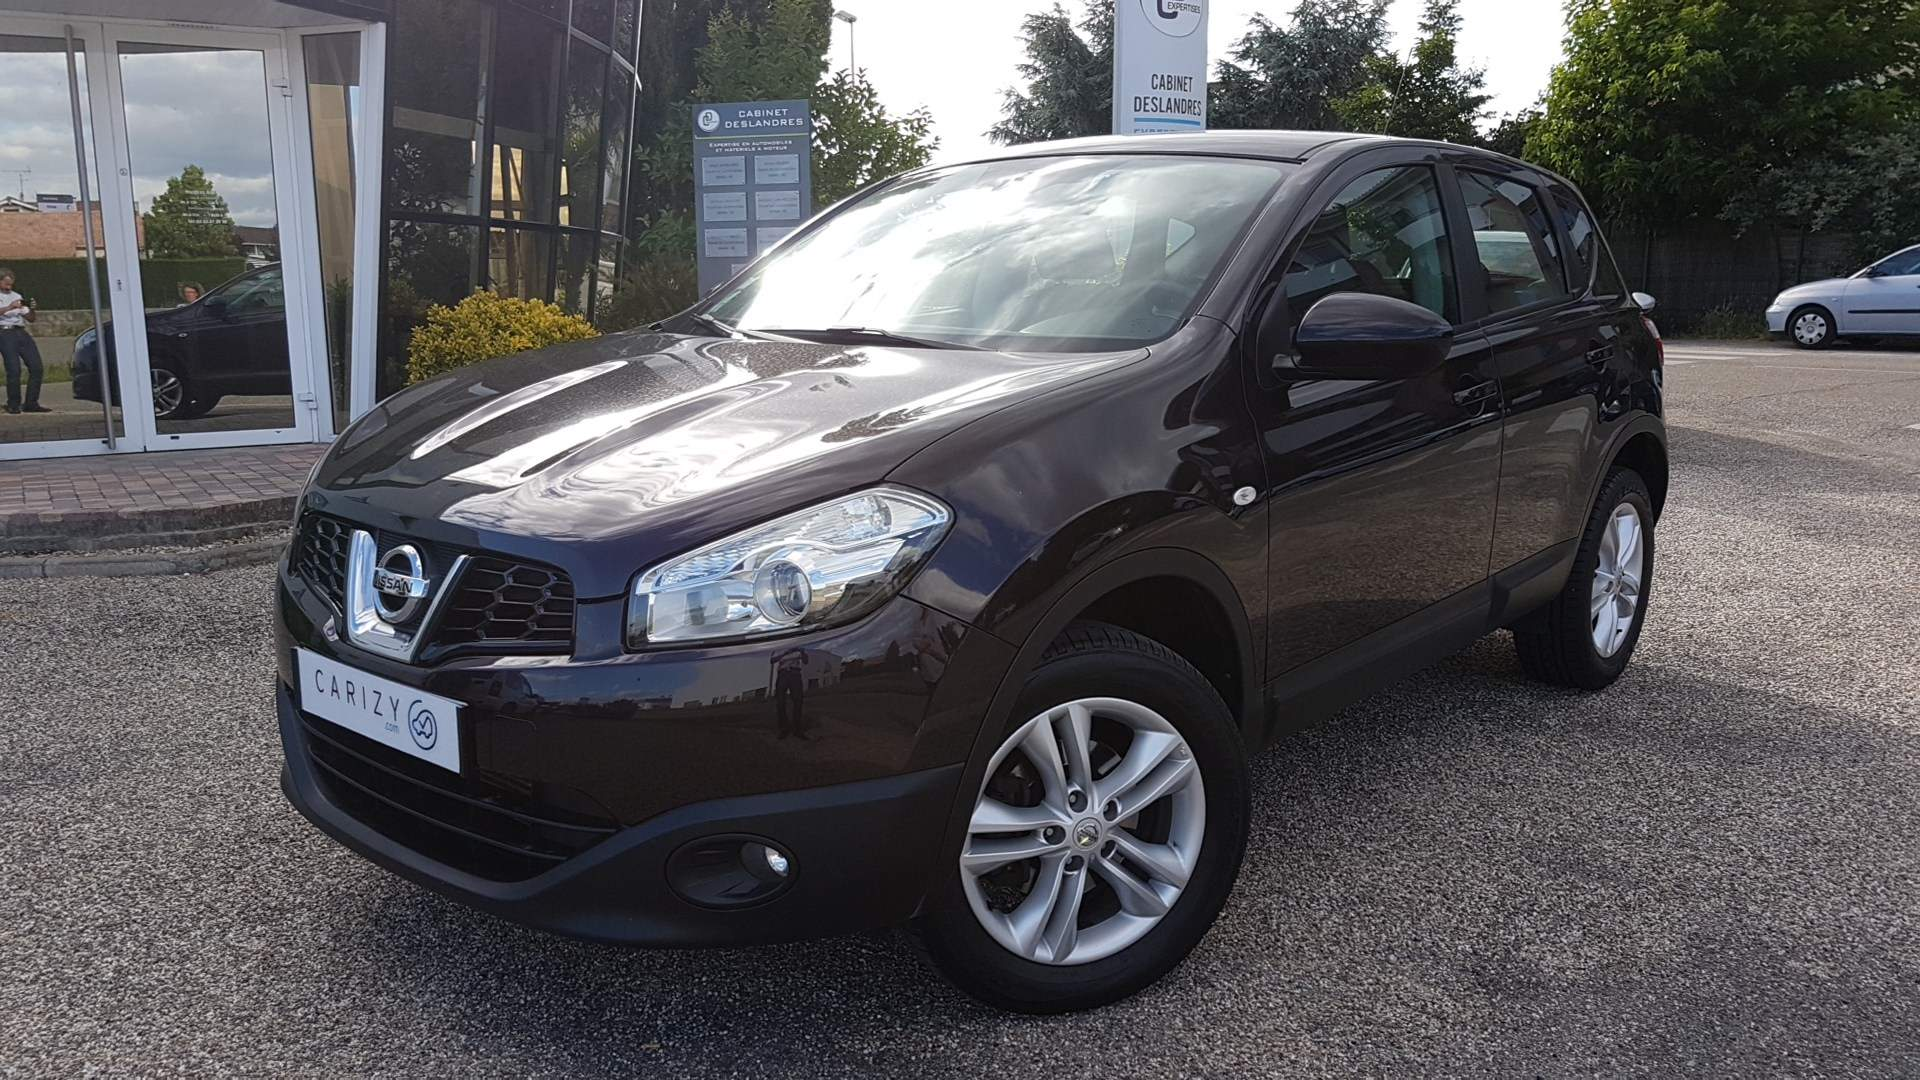 voiture nissan qashqai 1 5 dci 105 acenta 2wd occasion diesel 2011 131000 km 9900. Black Bedroom Furniture Sets. Home Design Ideas